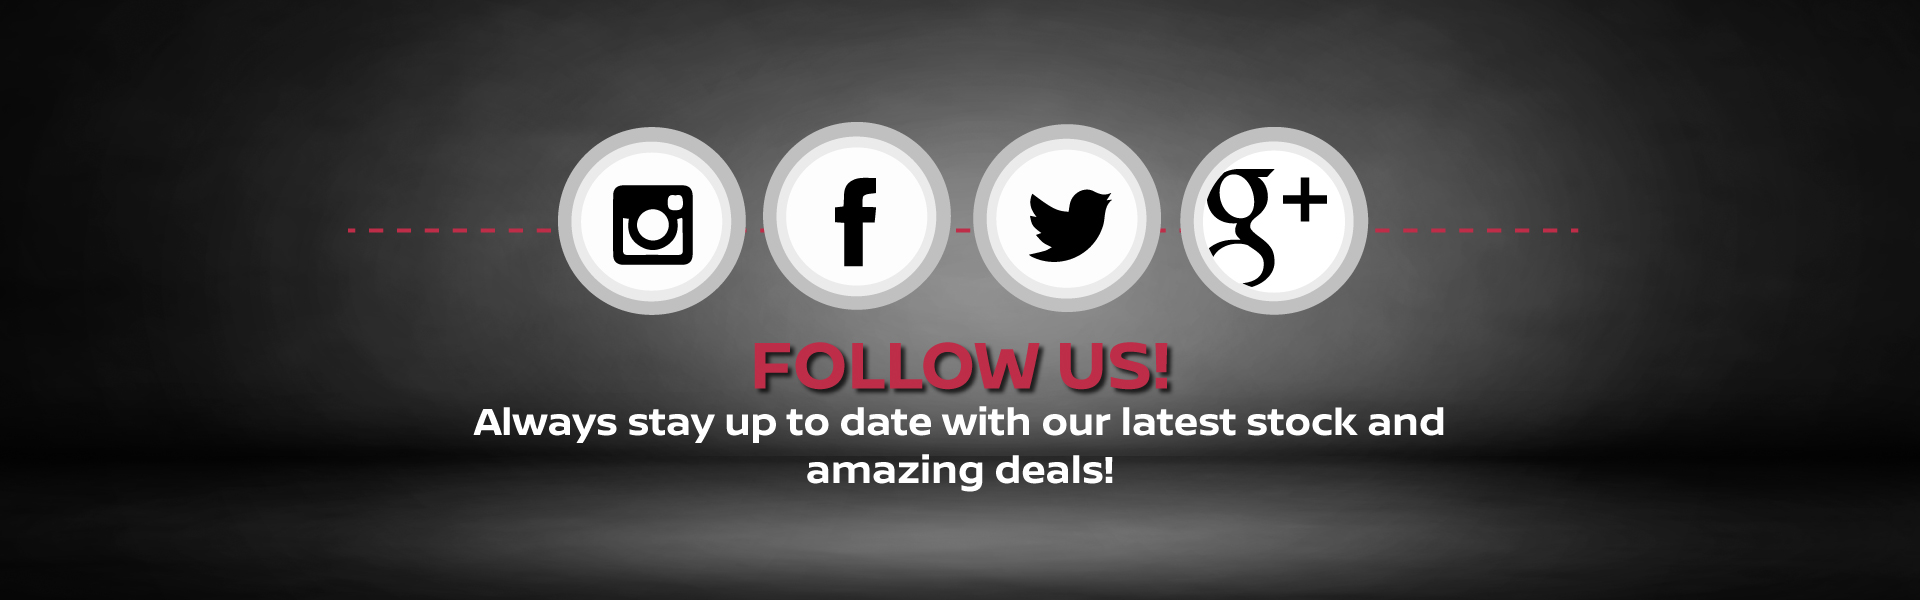 Always stay up to date with our latest stock and amazing deals via any of social channels